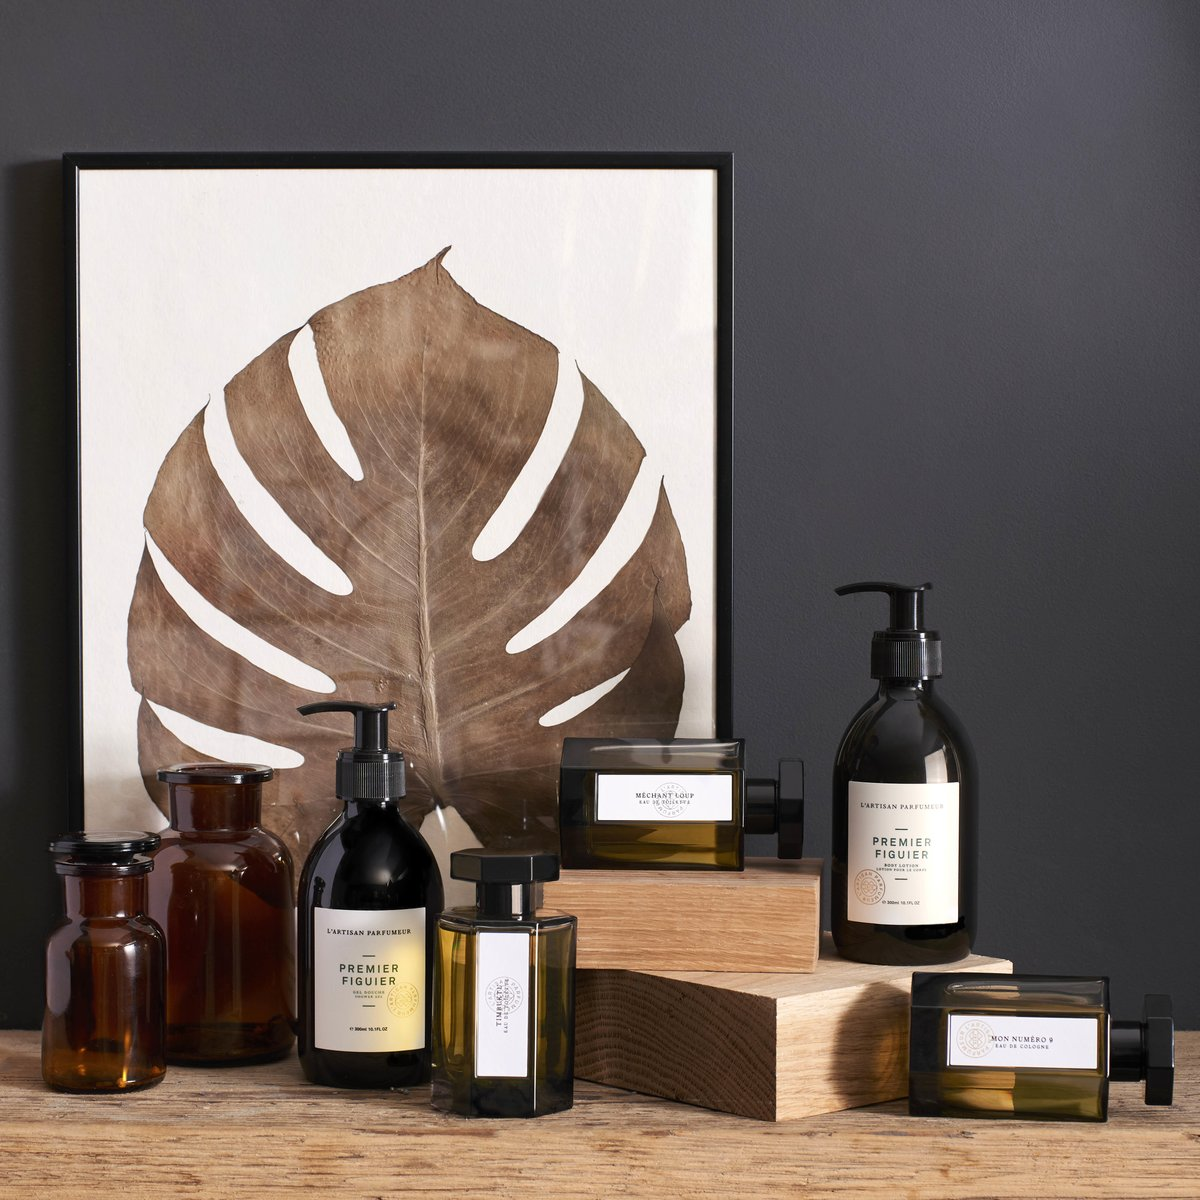 For him, this Valentine's Day, a gift of  earthy seductive tones, elegant aromatic greens or mysterious balsamic woods. https://t.co/GsOIyyJxIA